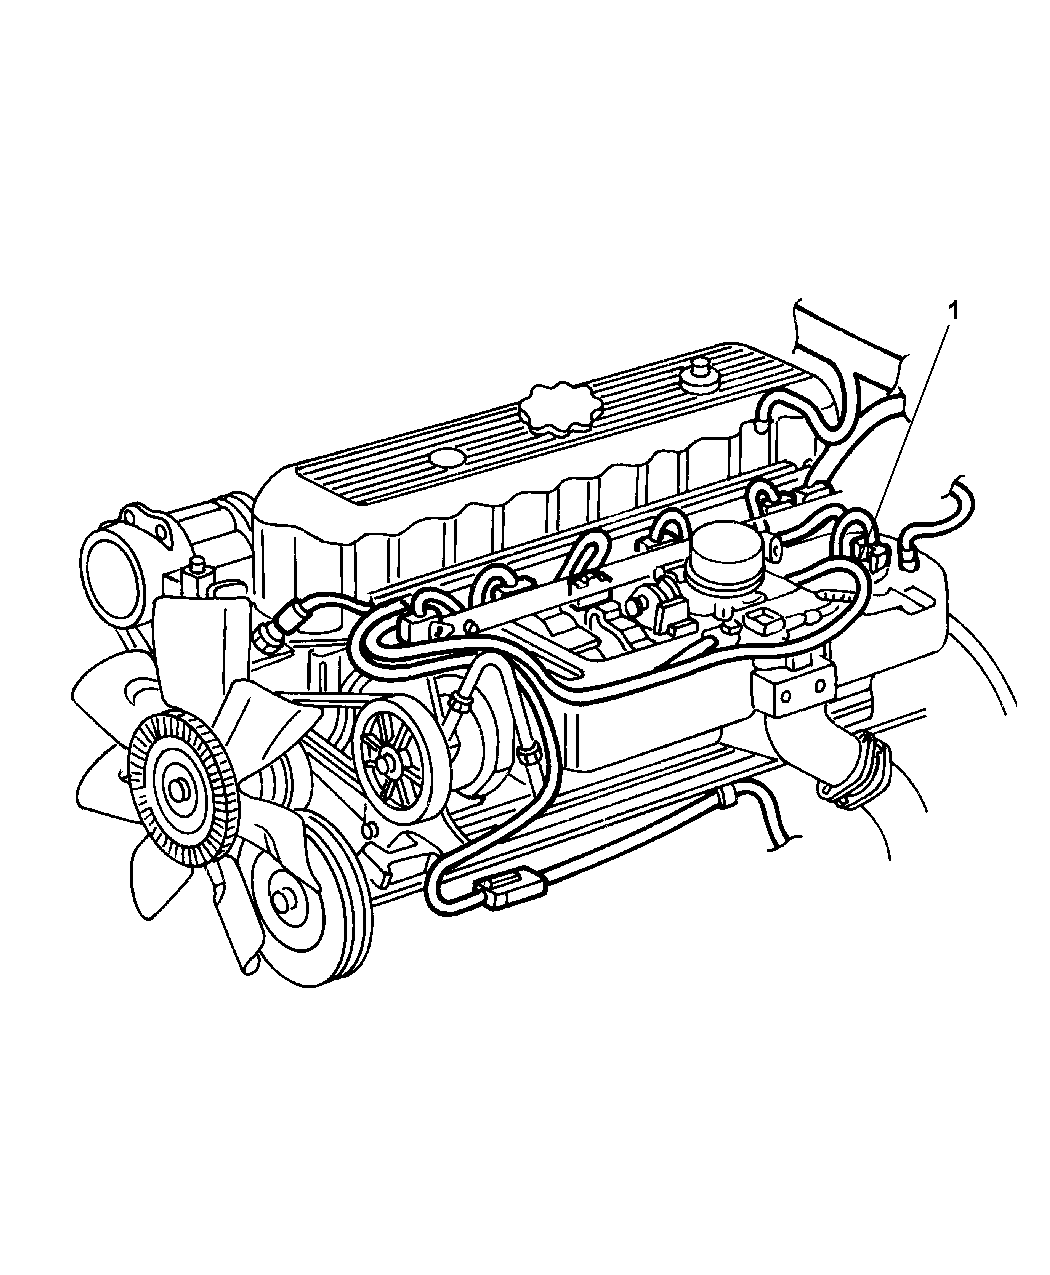 2004 Jeep Liberty Wiring Engine Related Parts